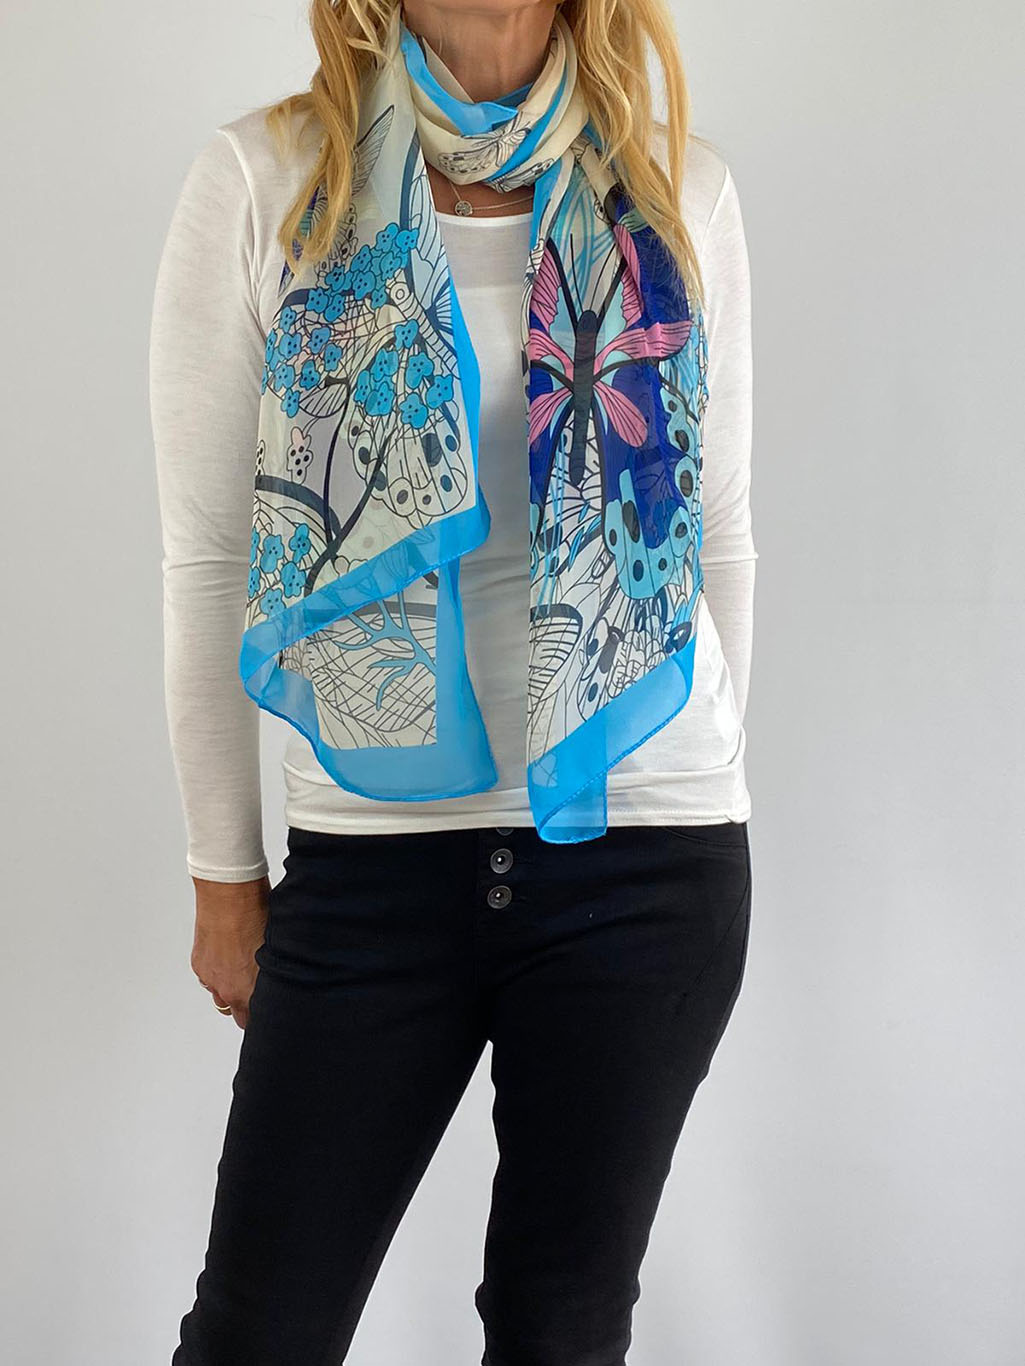 sky blue and white scarf Main